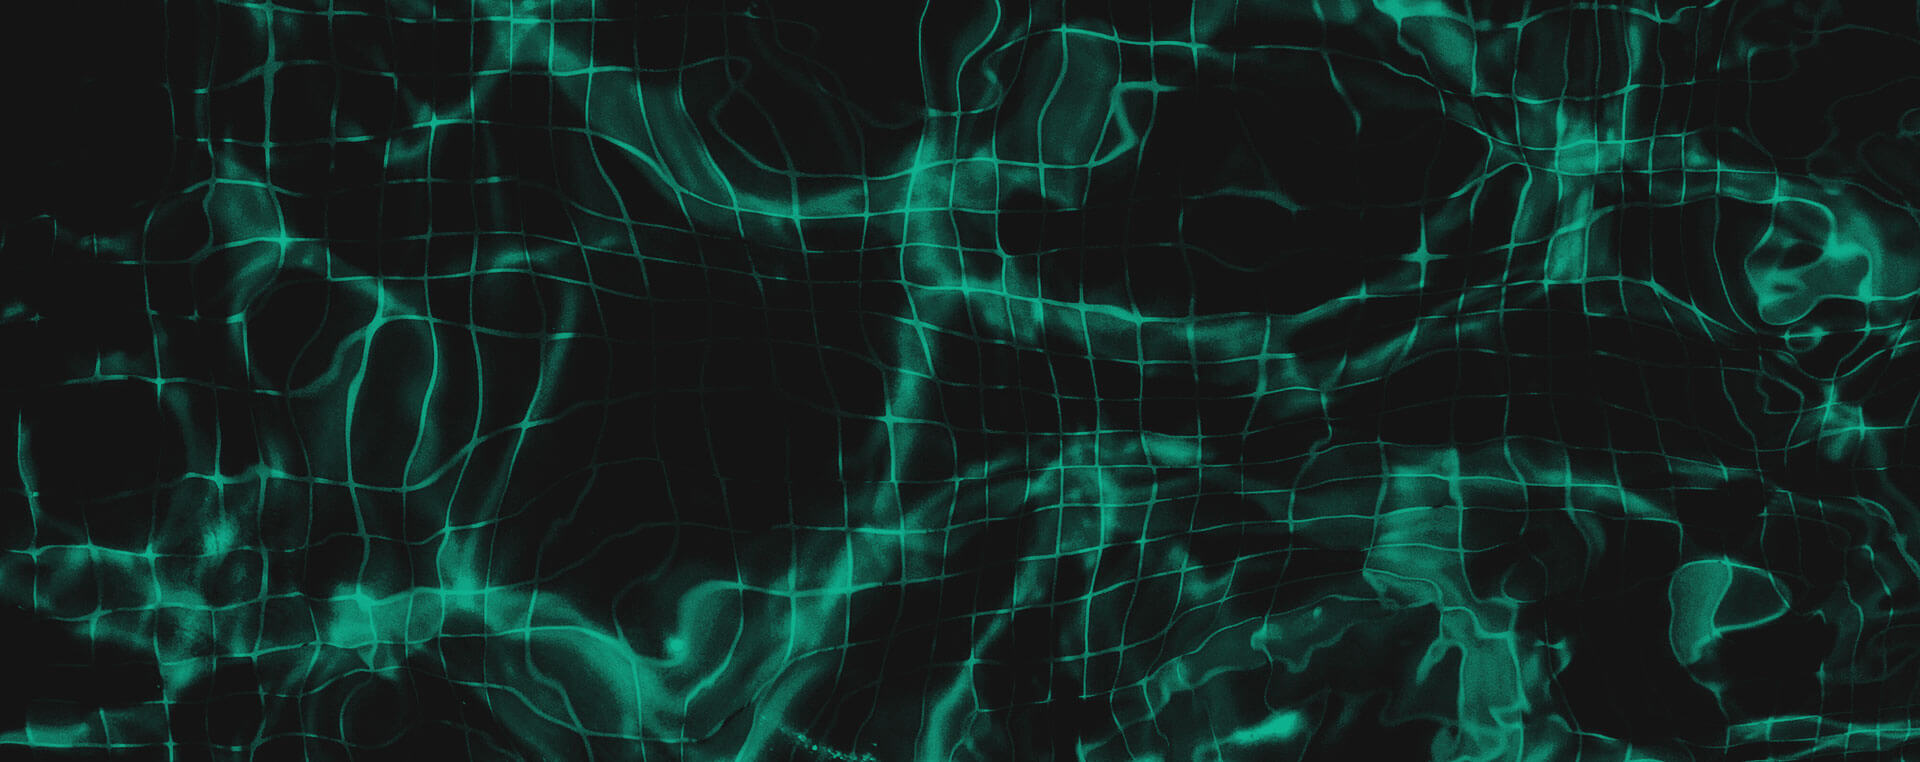 Green and black background image with a close up shot of a pool with water